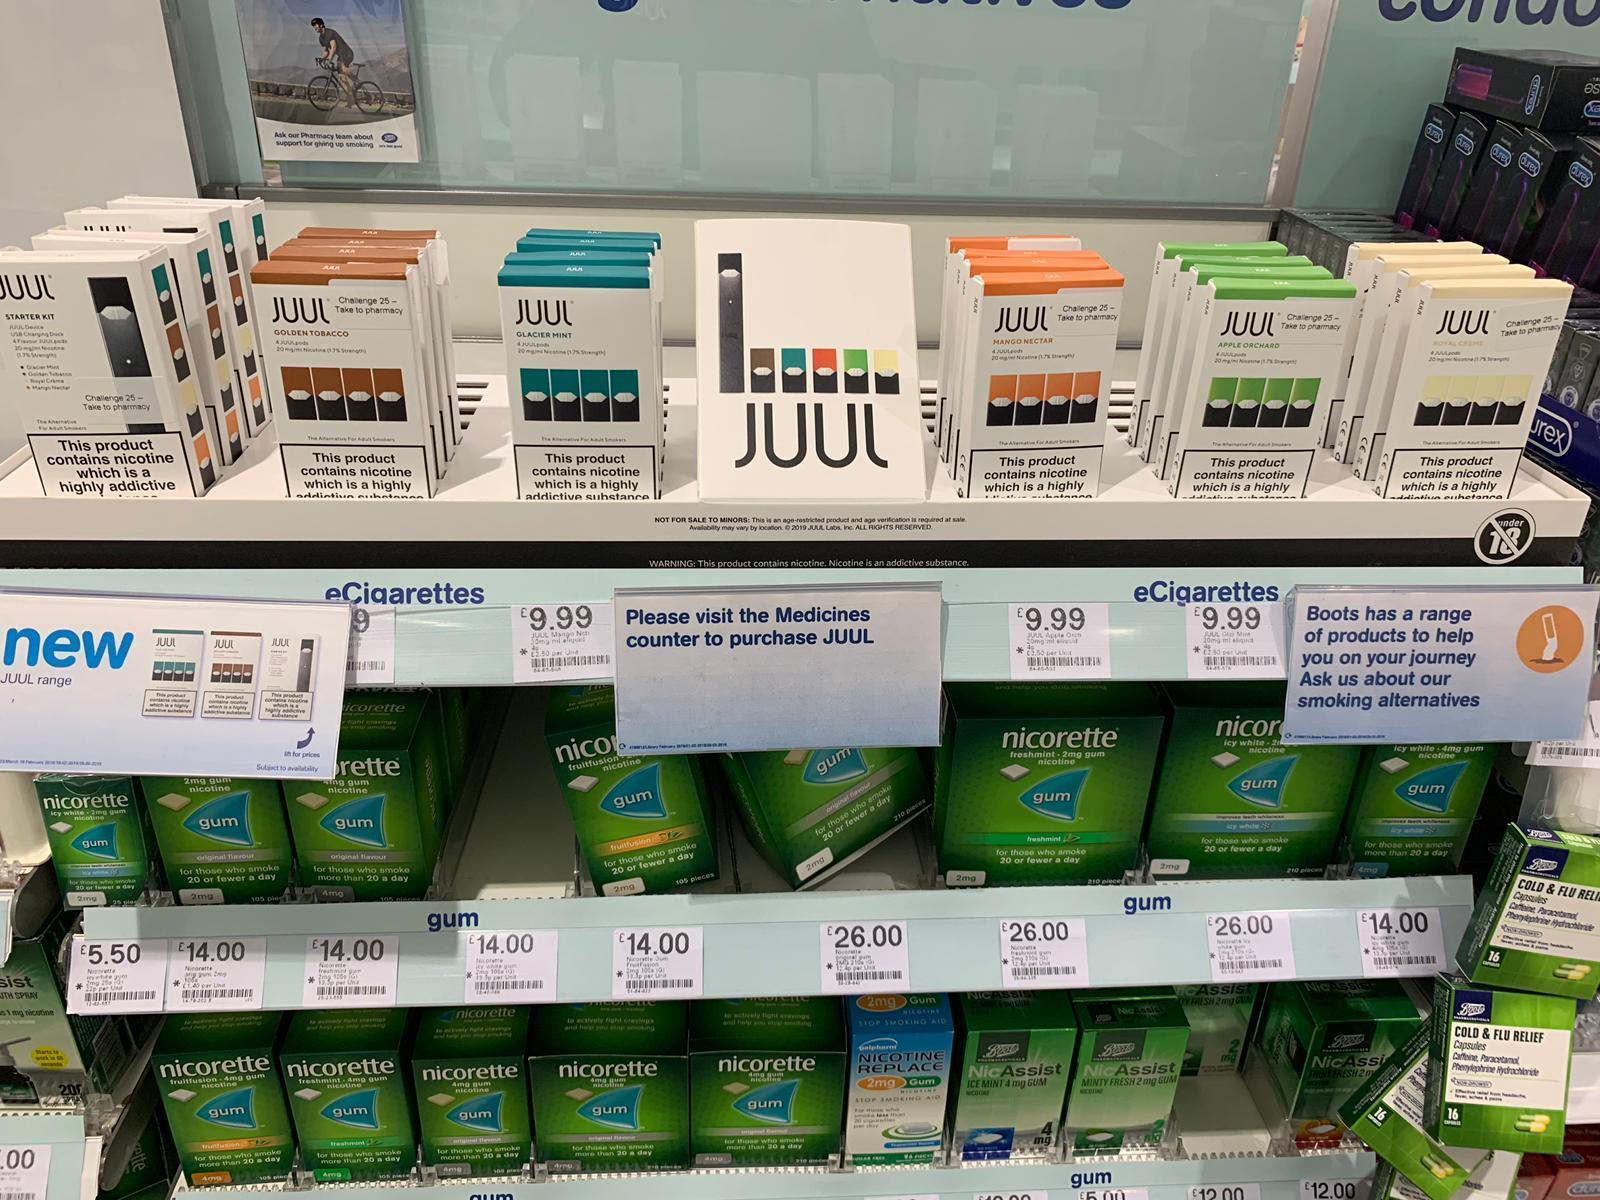 Vaping brand Juul secures listing in Boots   News   The Grocer